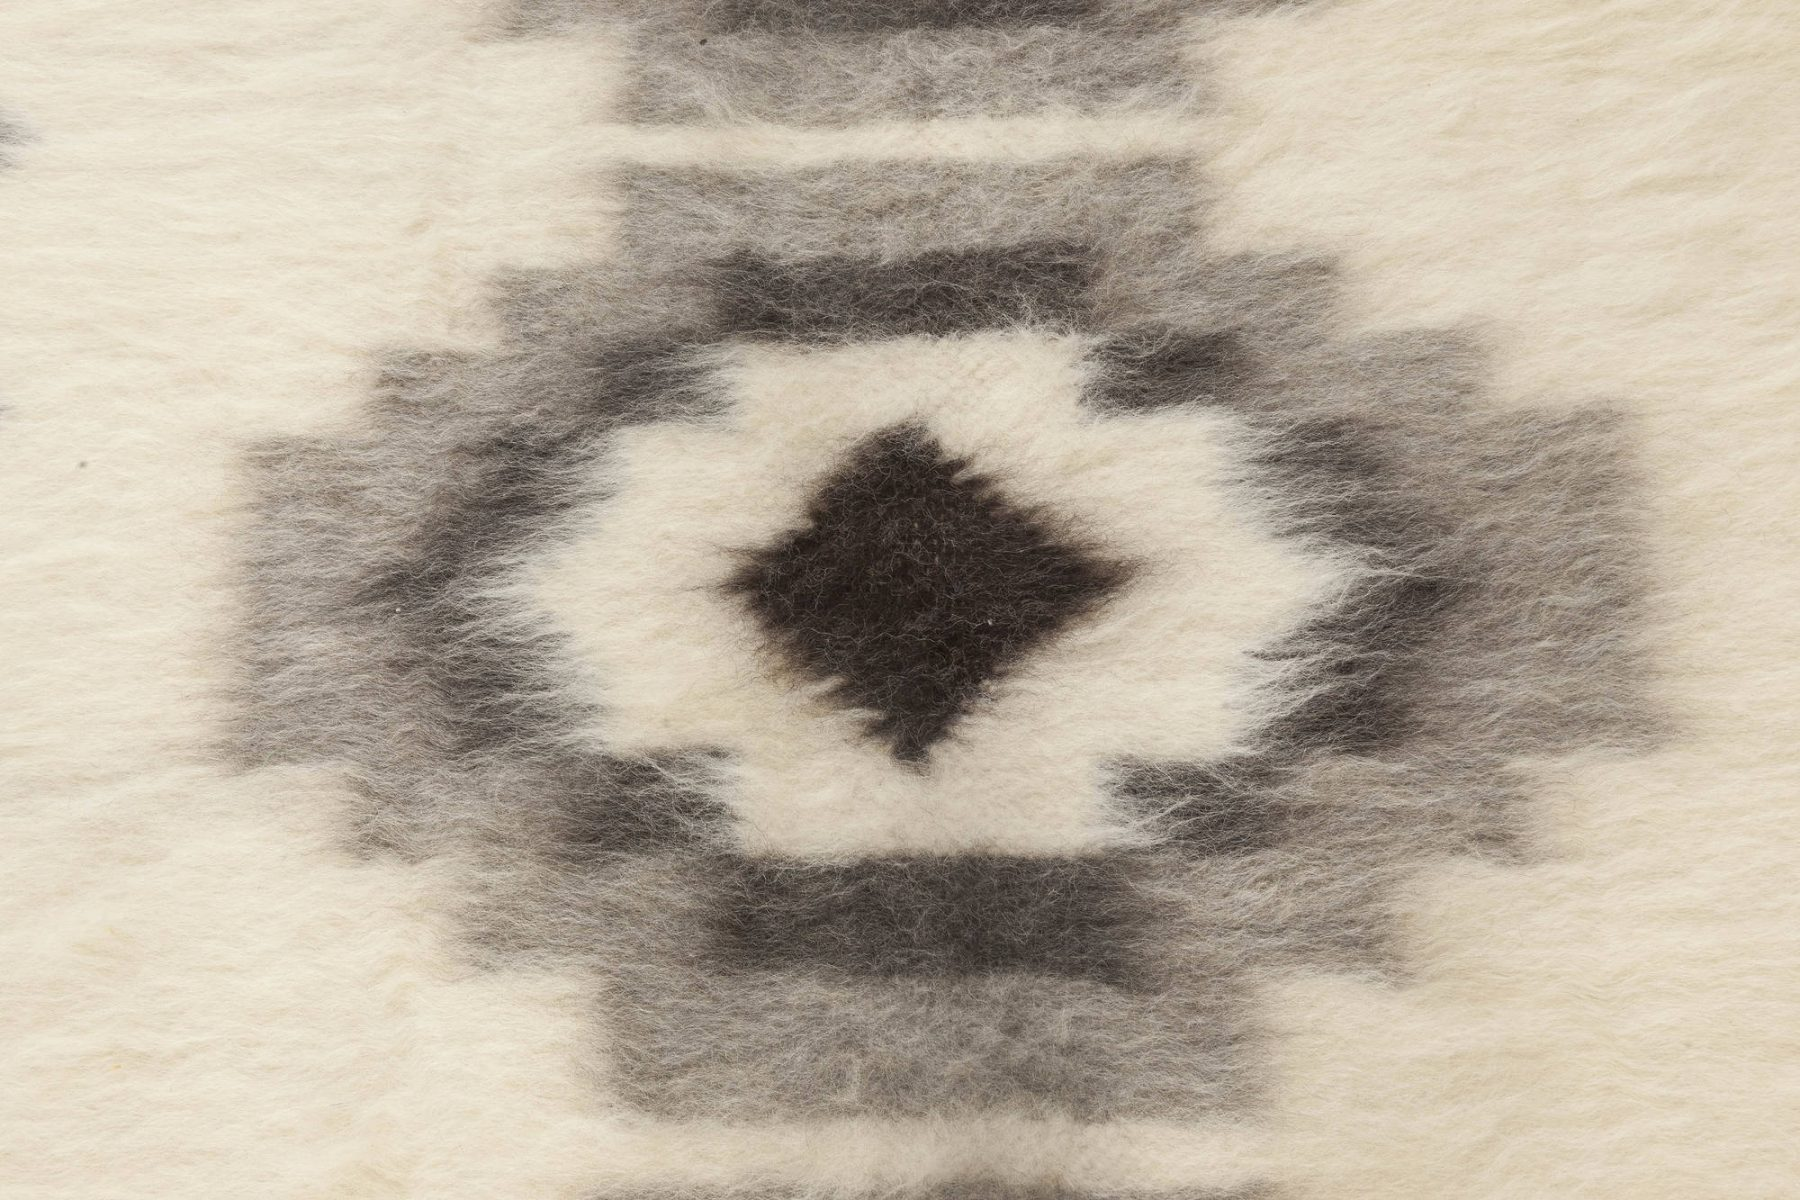 Stamverband I White and Black Hand Knotted Goat Wool Rug N11827